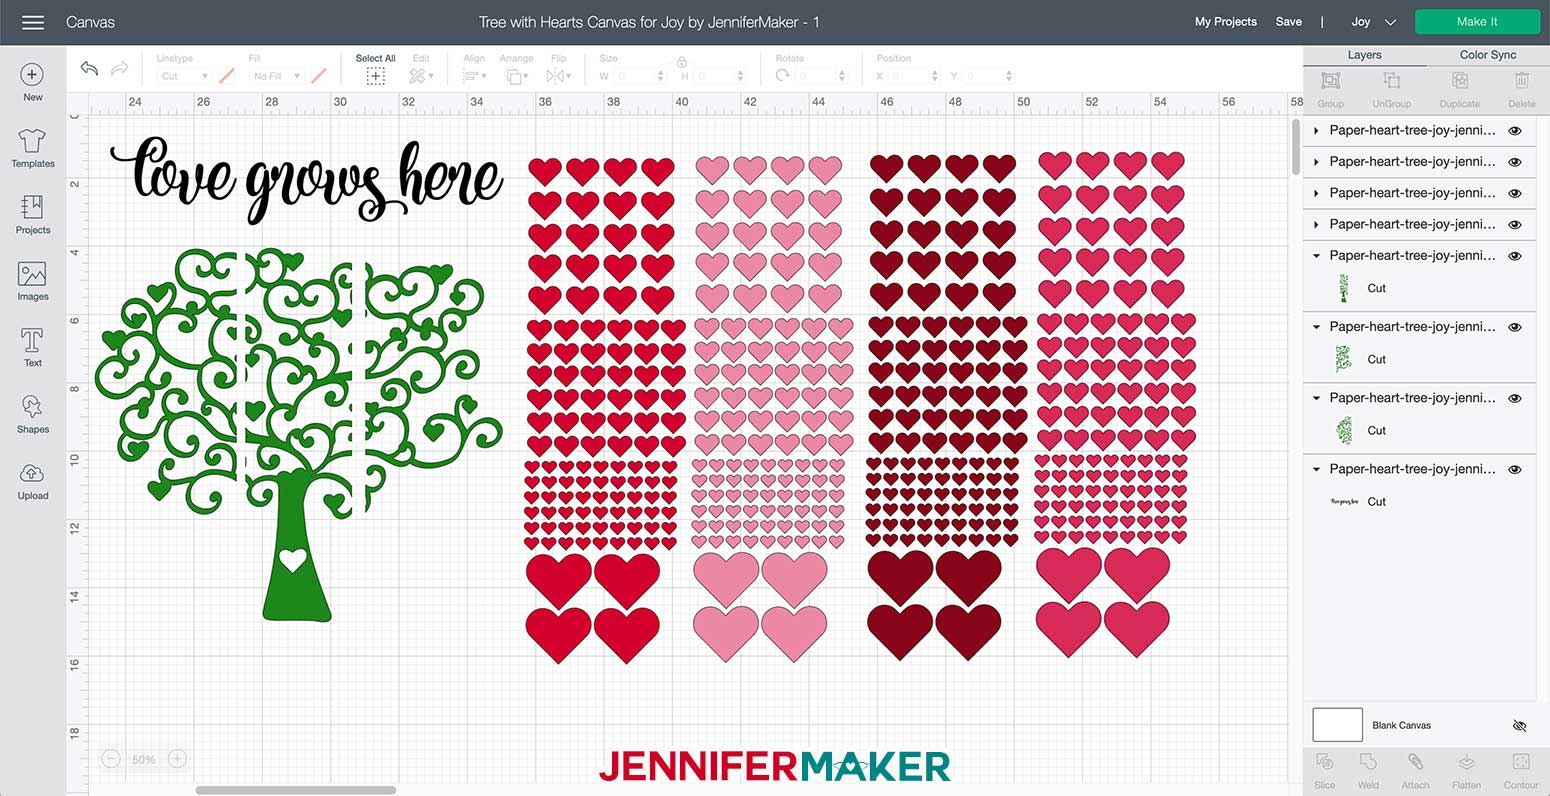 Tree with hearts svg uploaded to Cricut Design Space and sized for the Cricut Joy